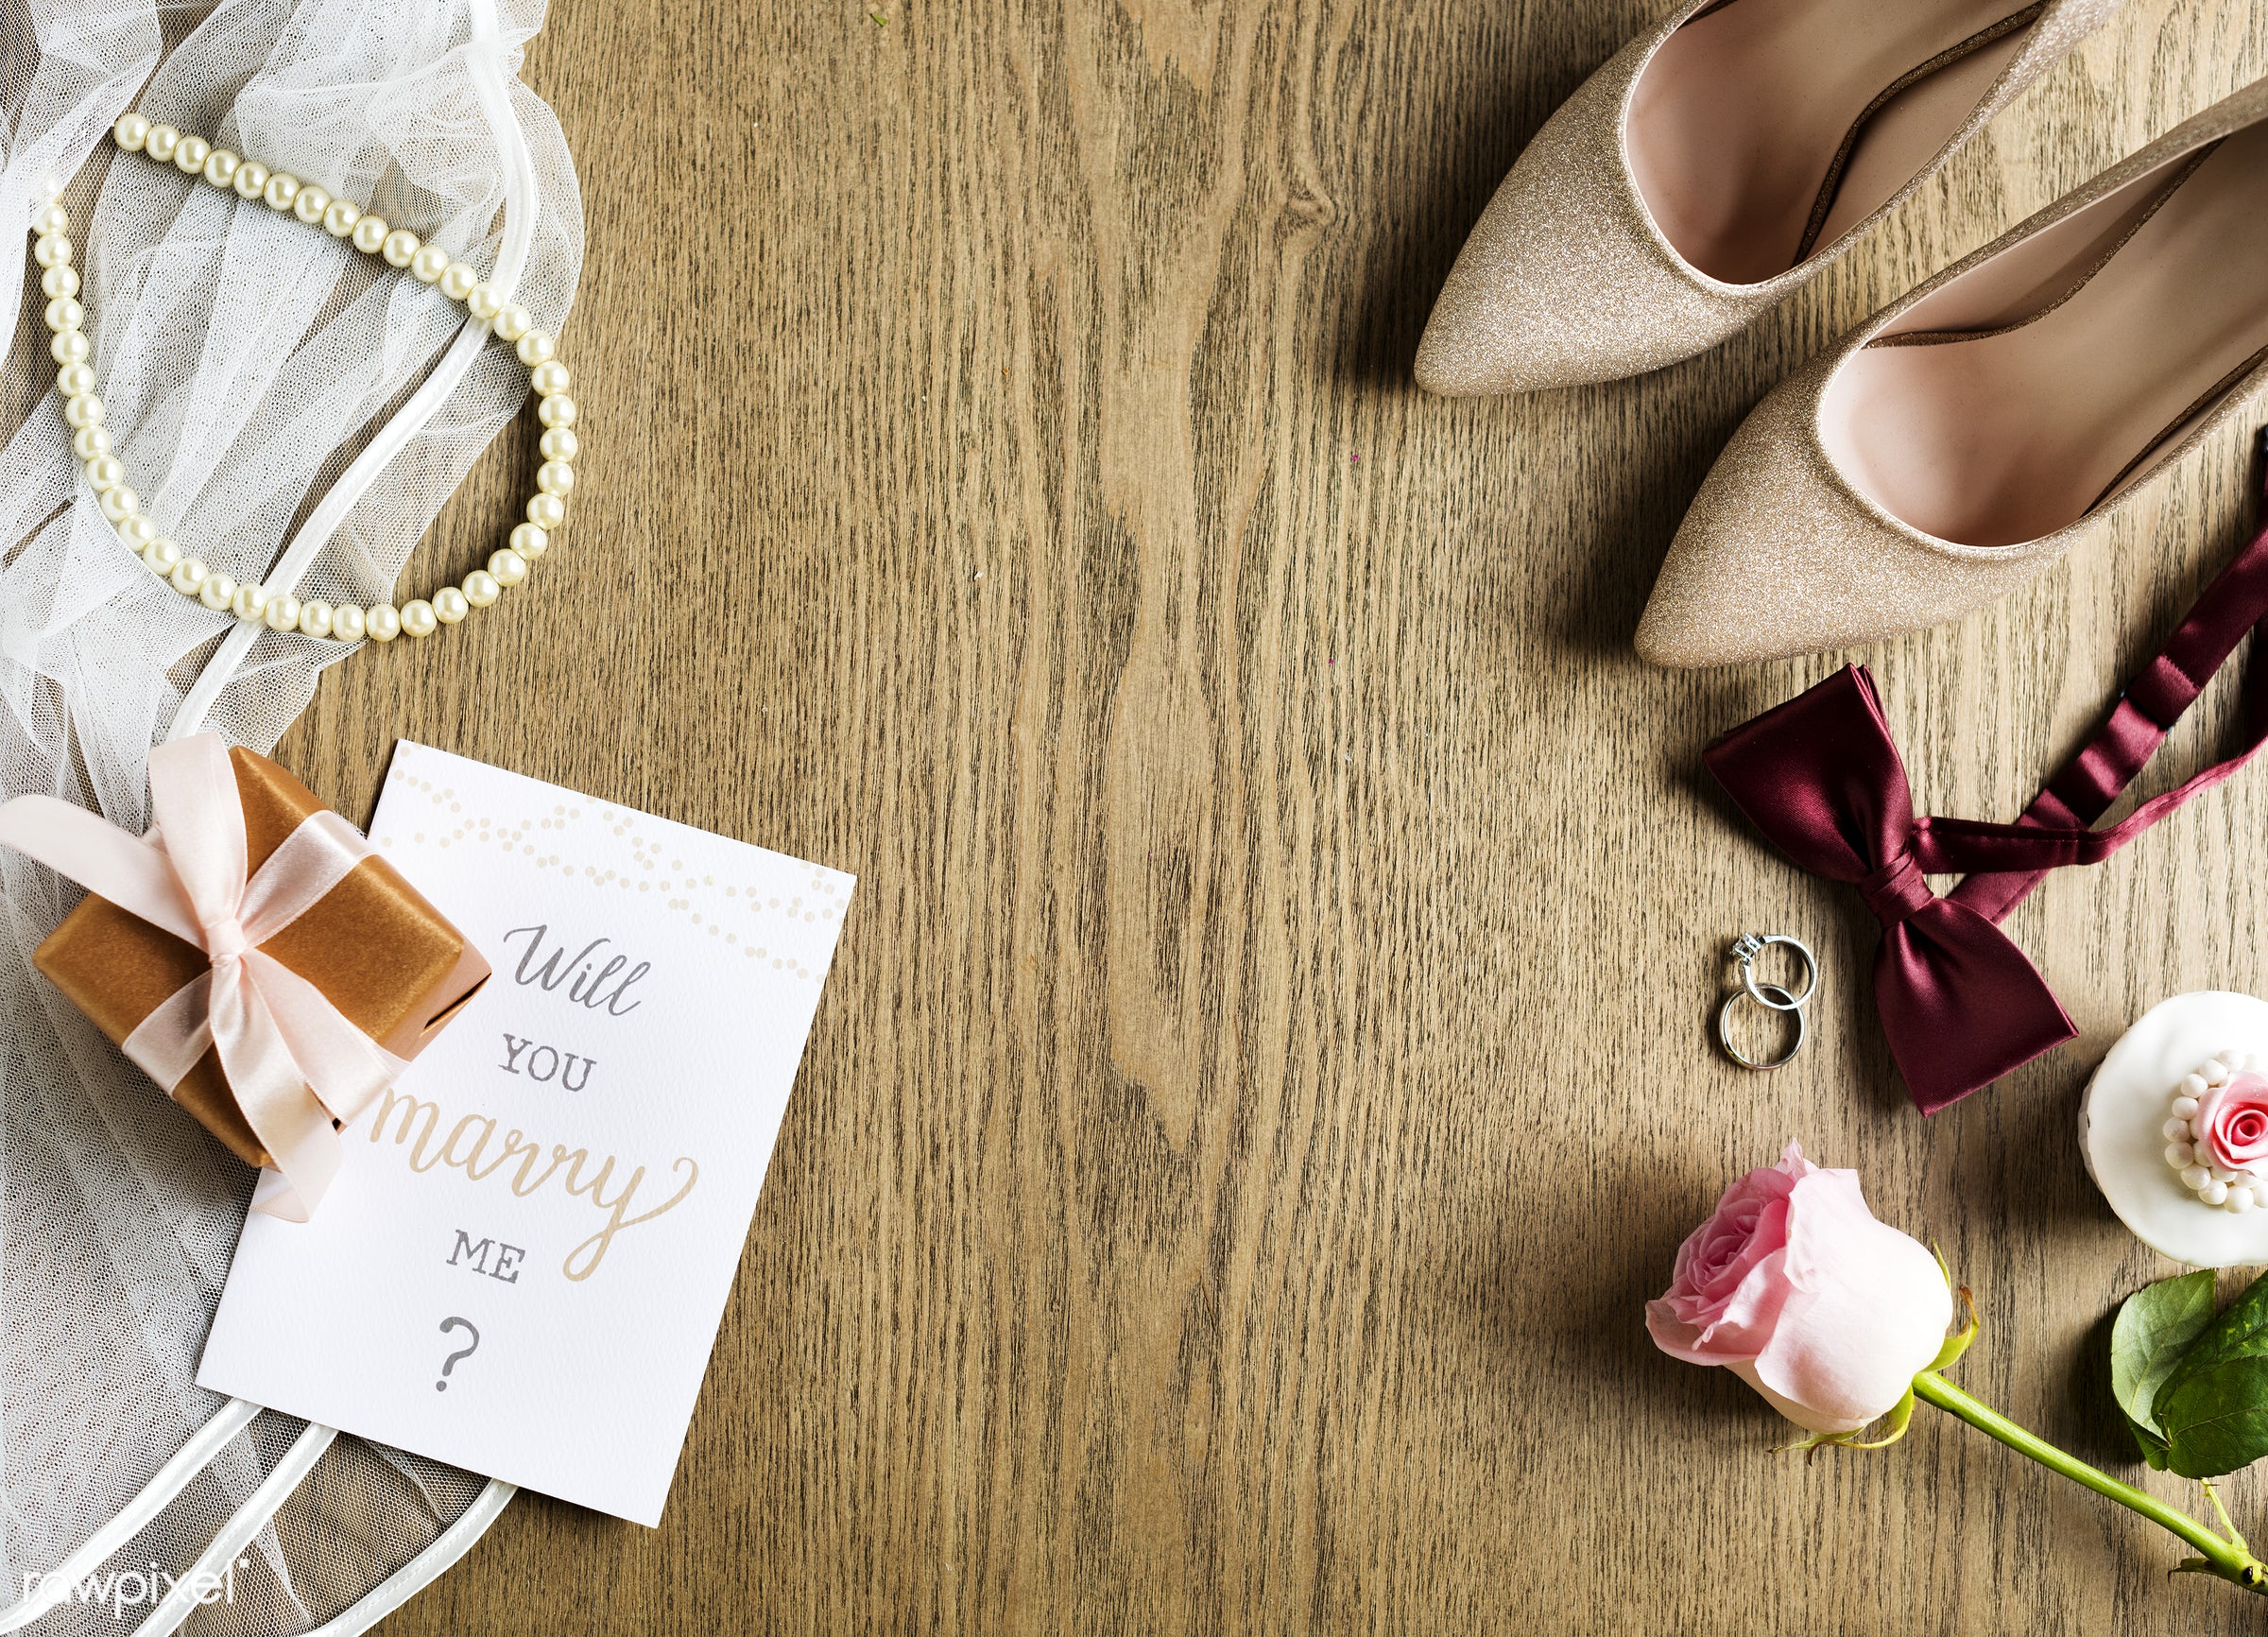 nobody, smitten, together, love, propose, woman, lifestyle, card, gown, pink, rings, heels, cheerful, marry, shoes, asking,...